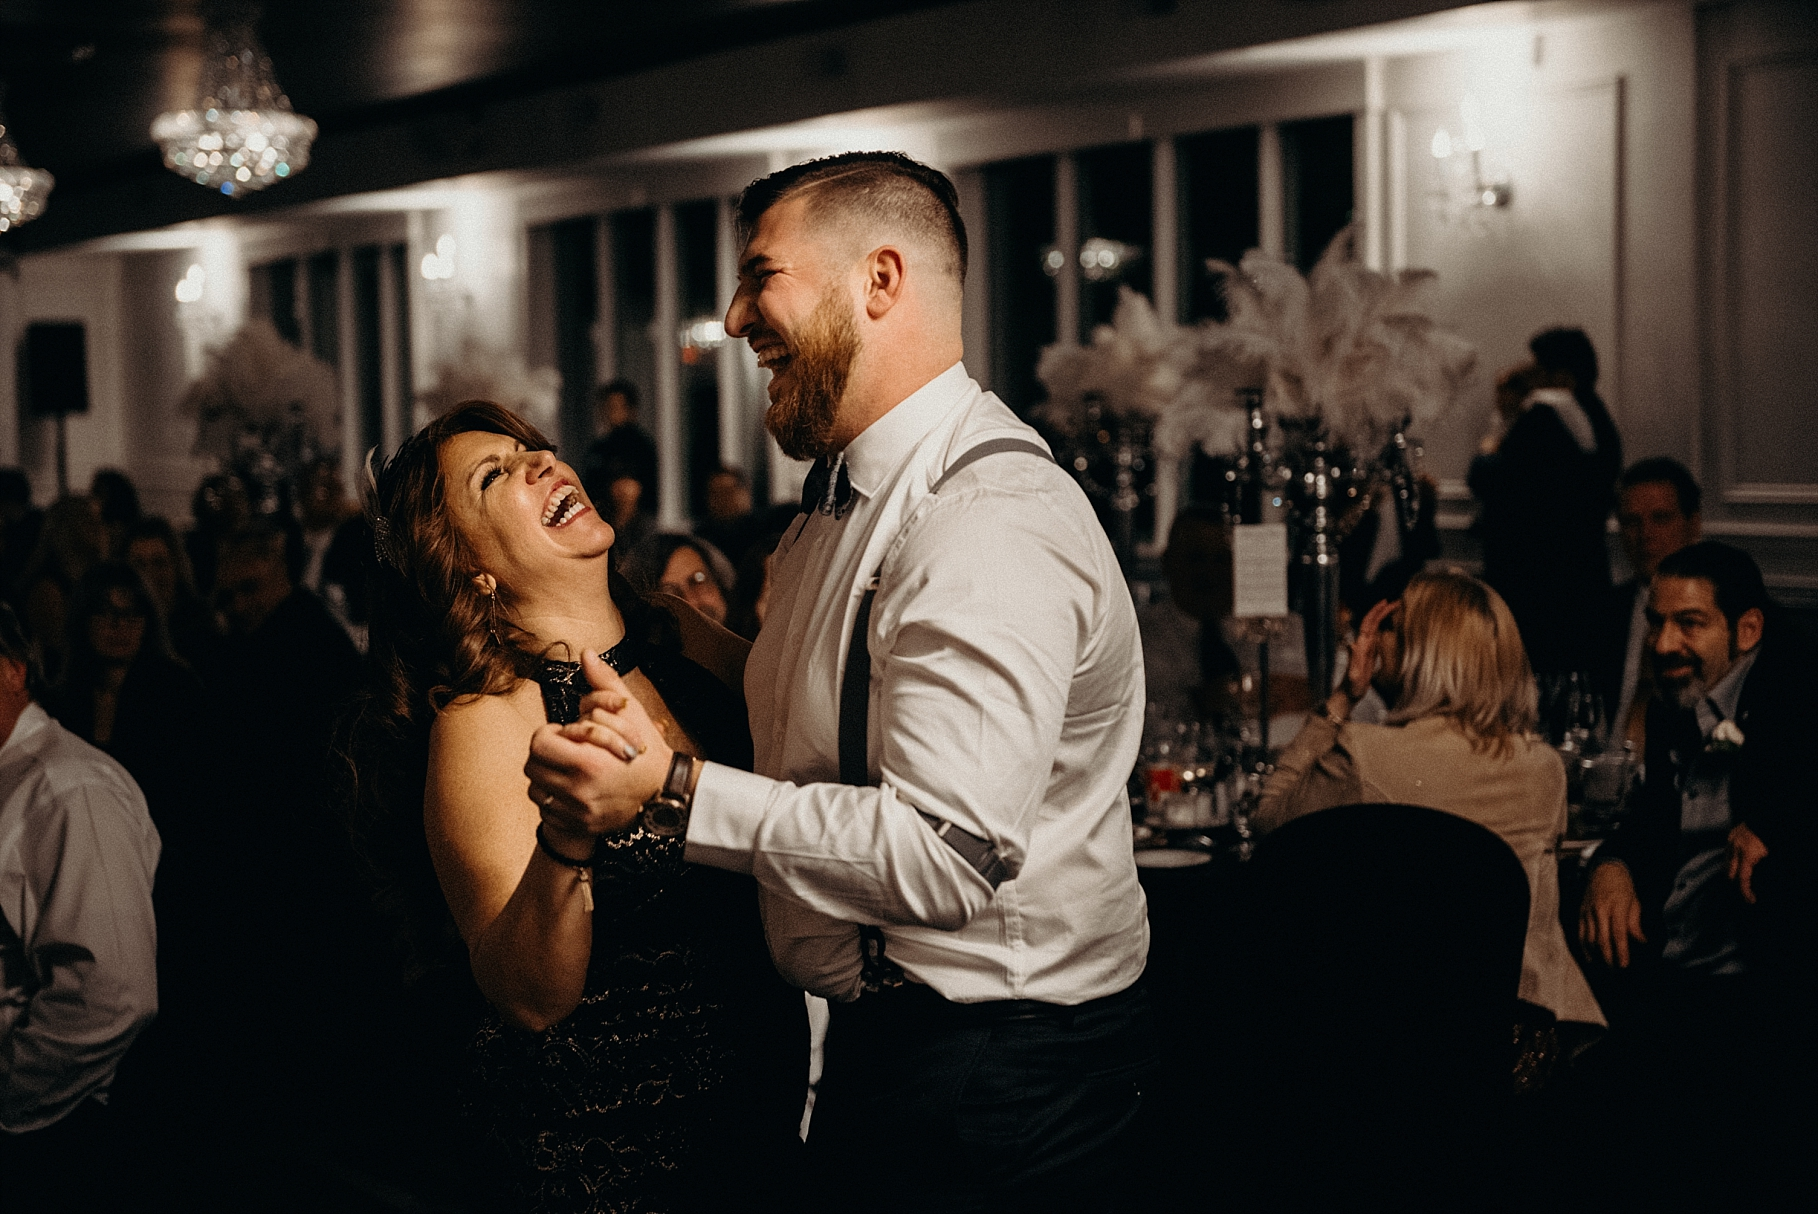 Orchard View Wedding by Mocha Tree Studios Ottawa Wedding and Engagement Photographer and Videographer Dark Moody Intimate Authentic Modern Romantic Cinematic Best Candid 28